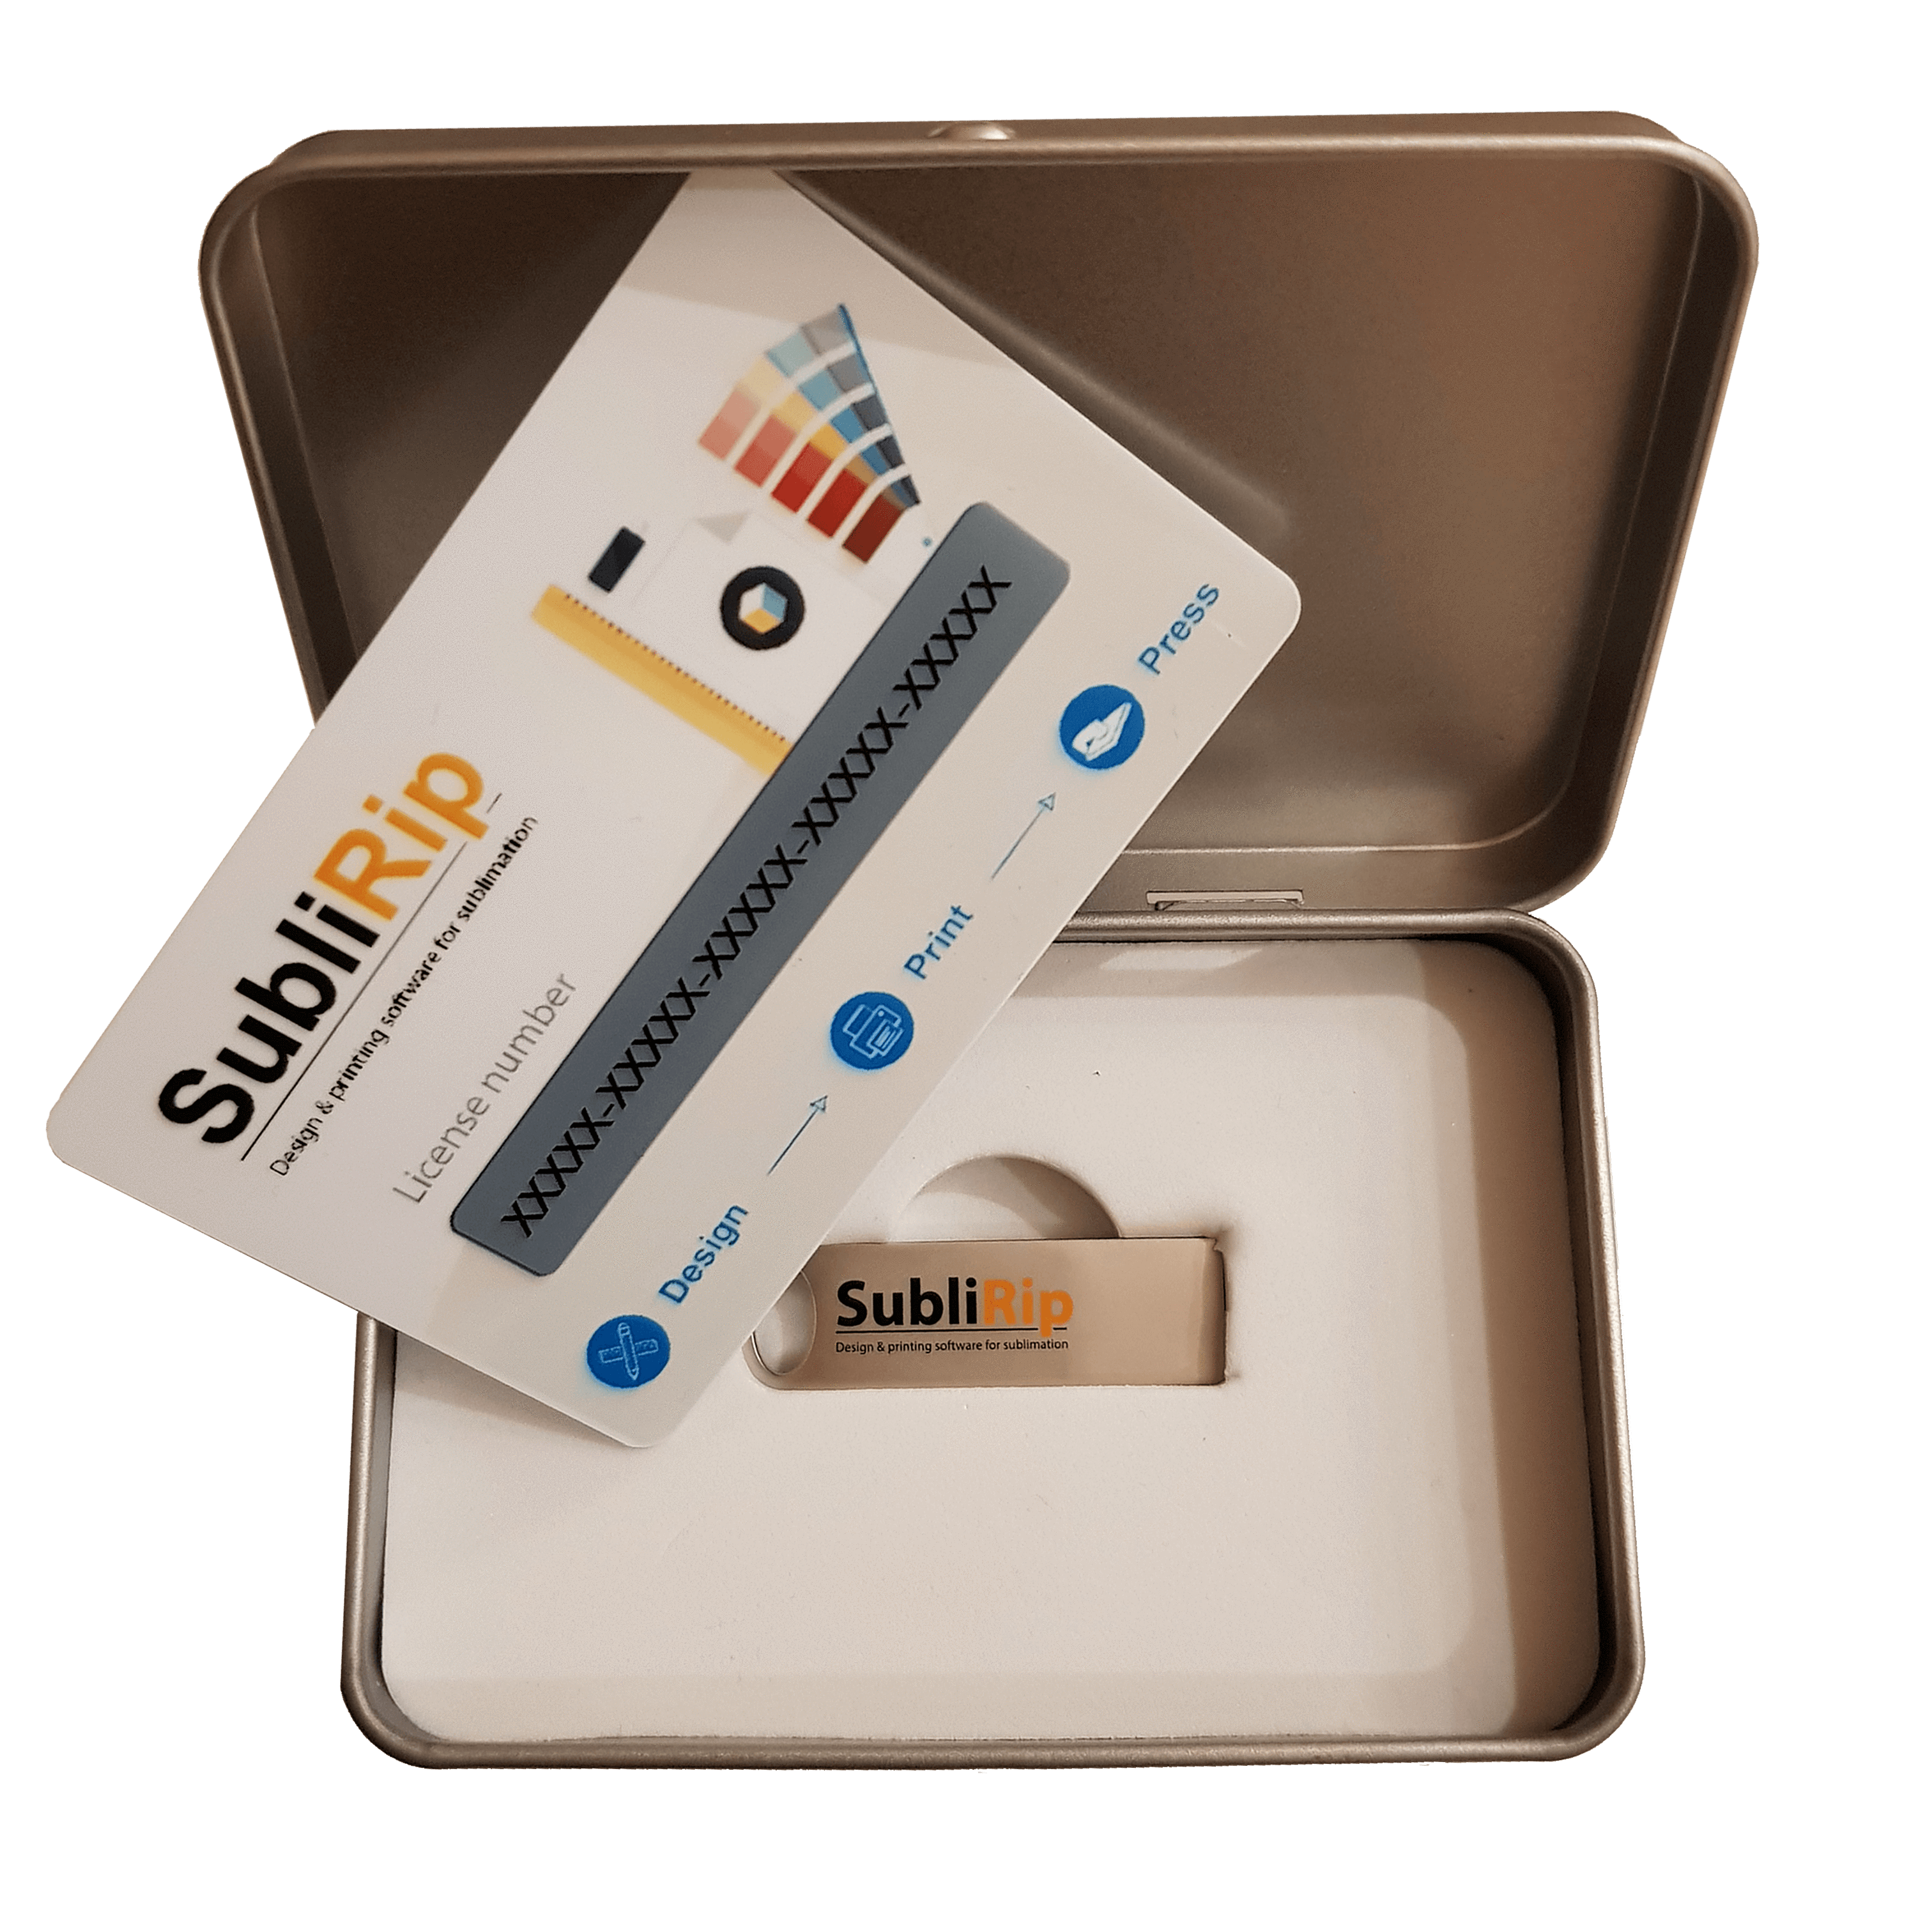 Sublirip Design And Print Software For Sublimation